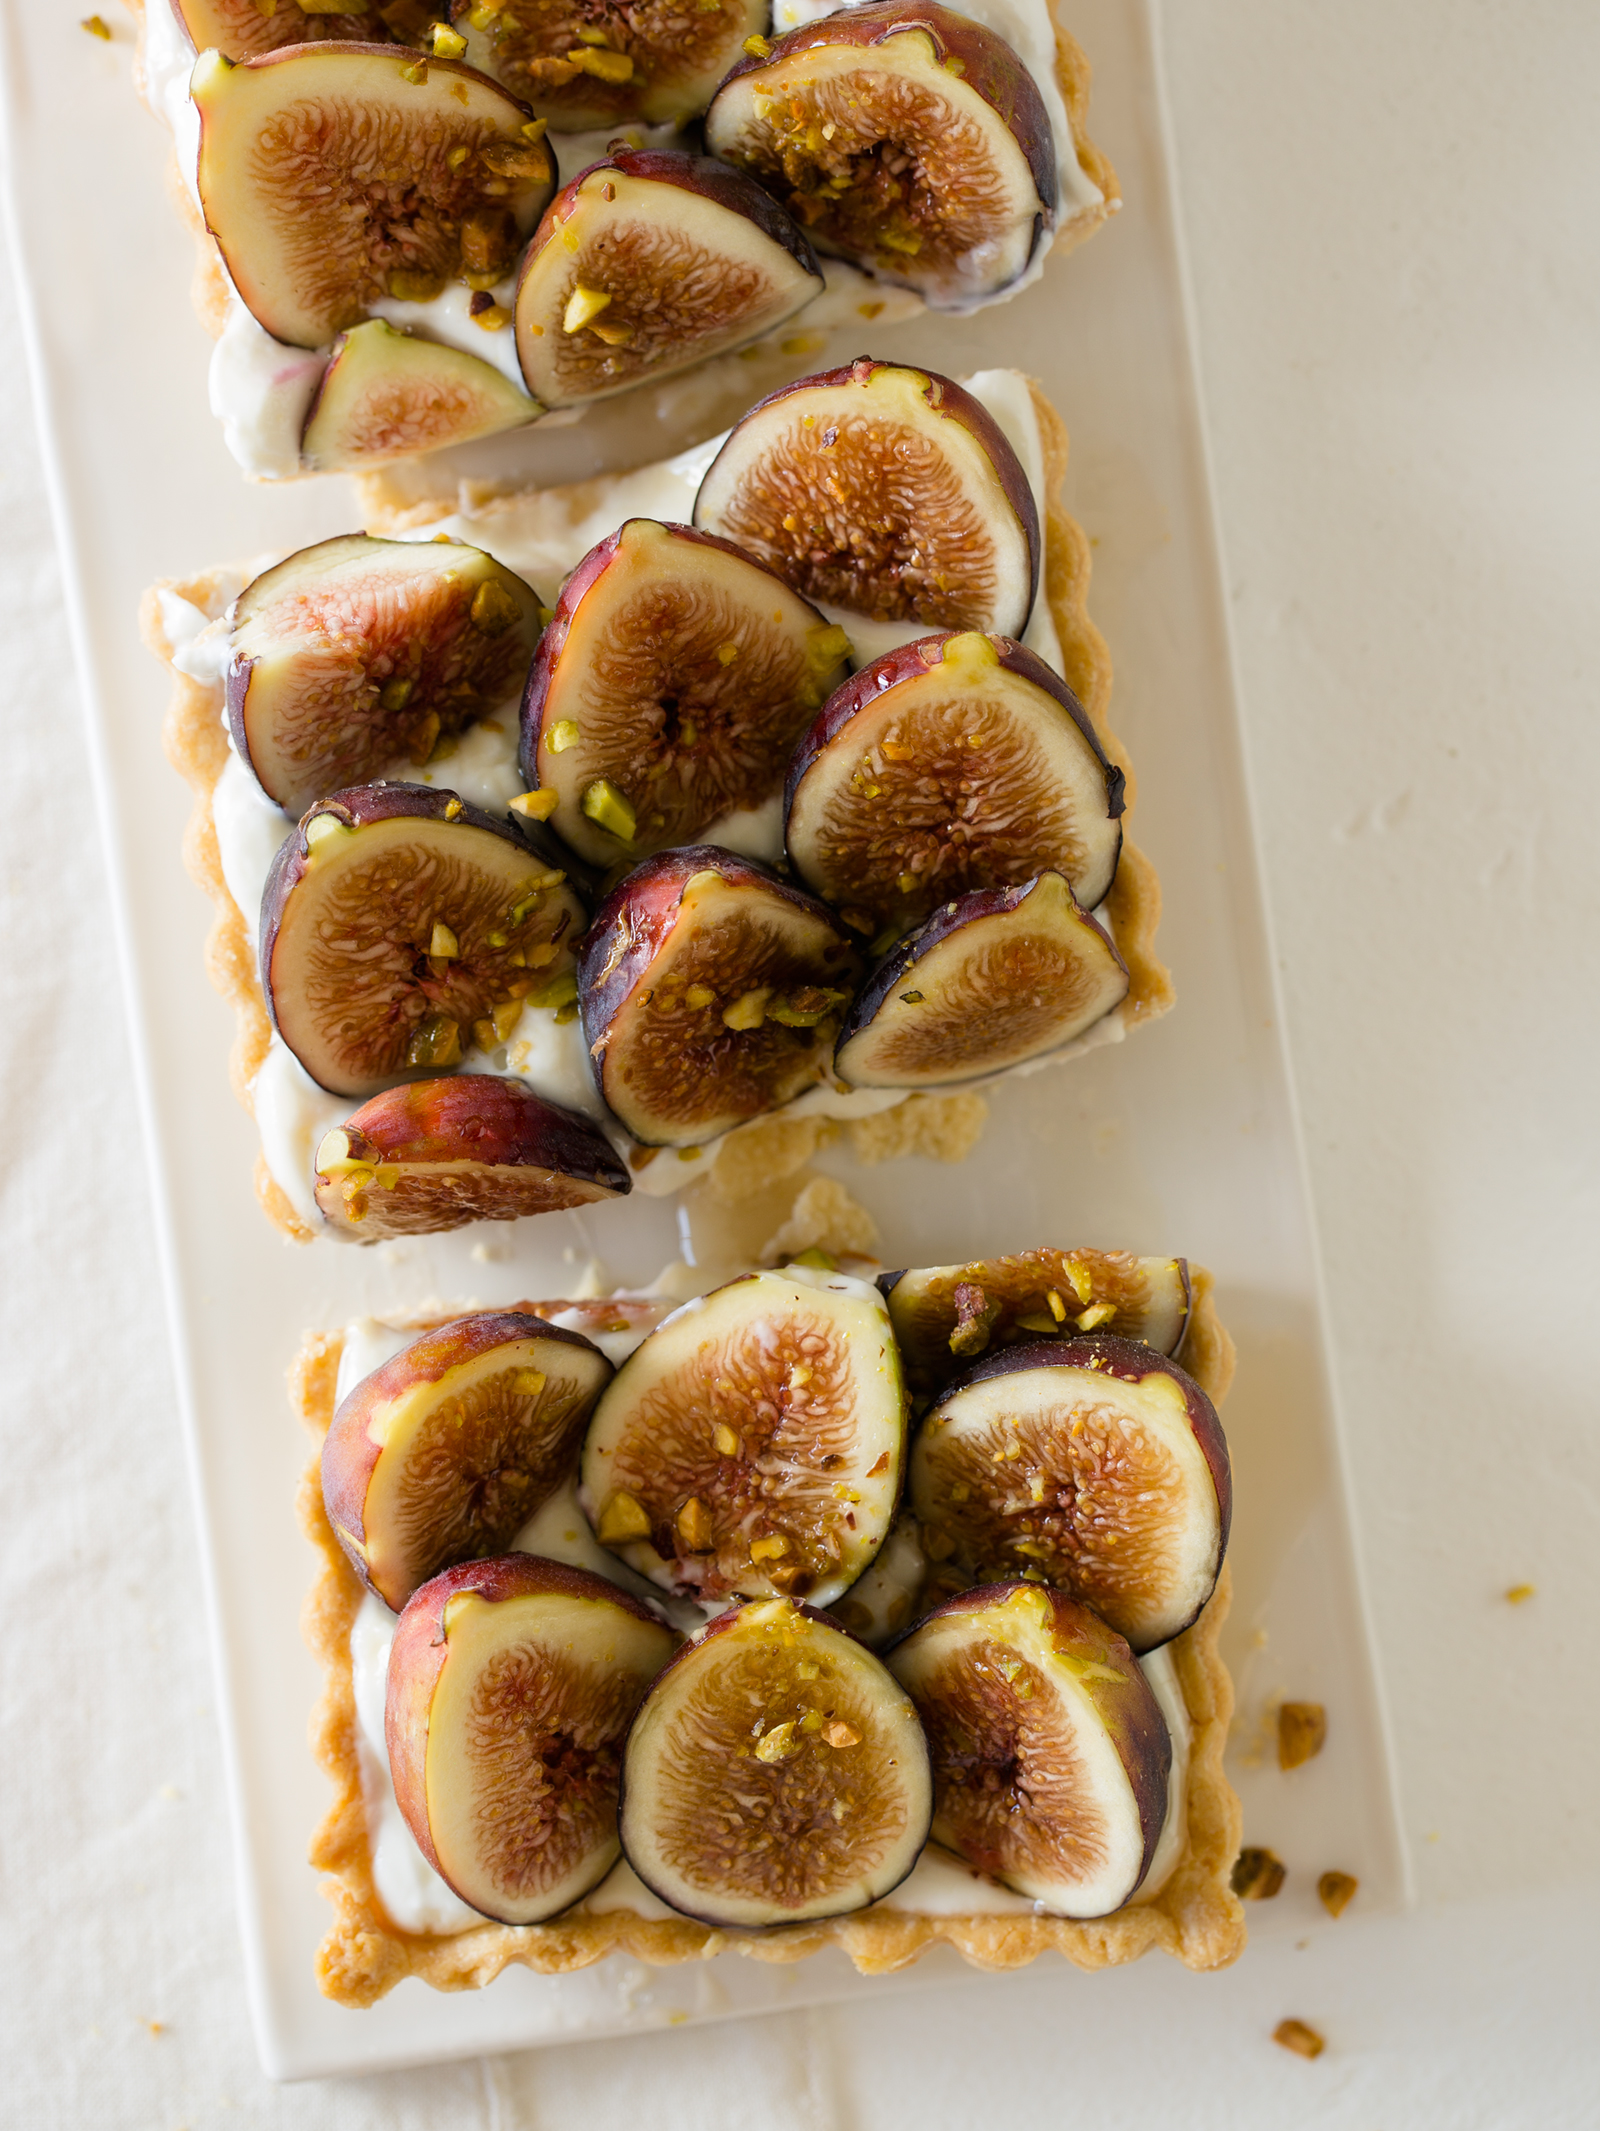 ... ! My favorite. So naturally I love this Fig and Honey-Yogurt Tart